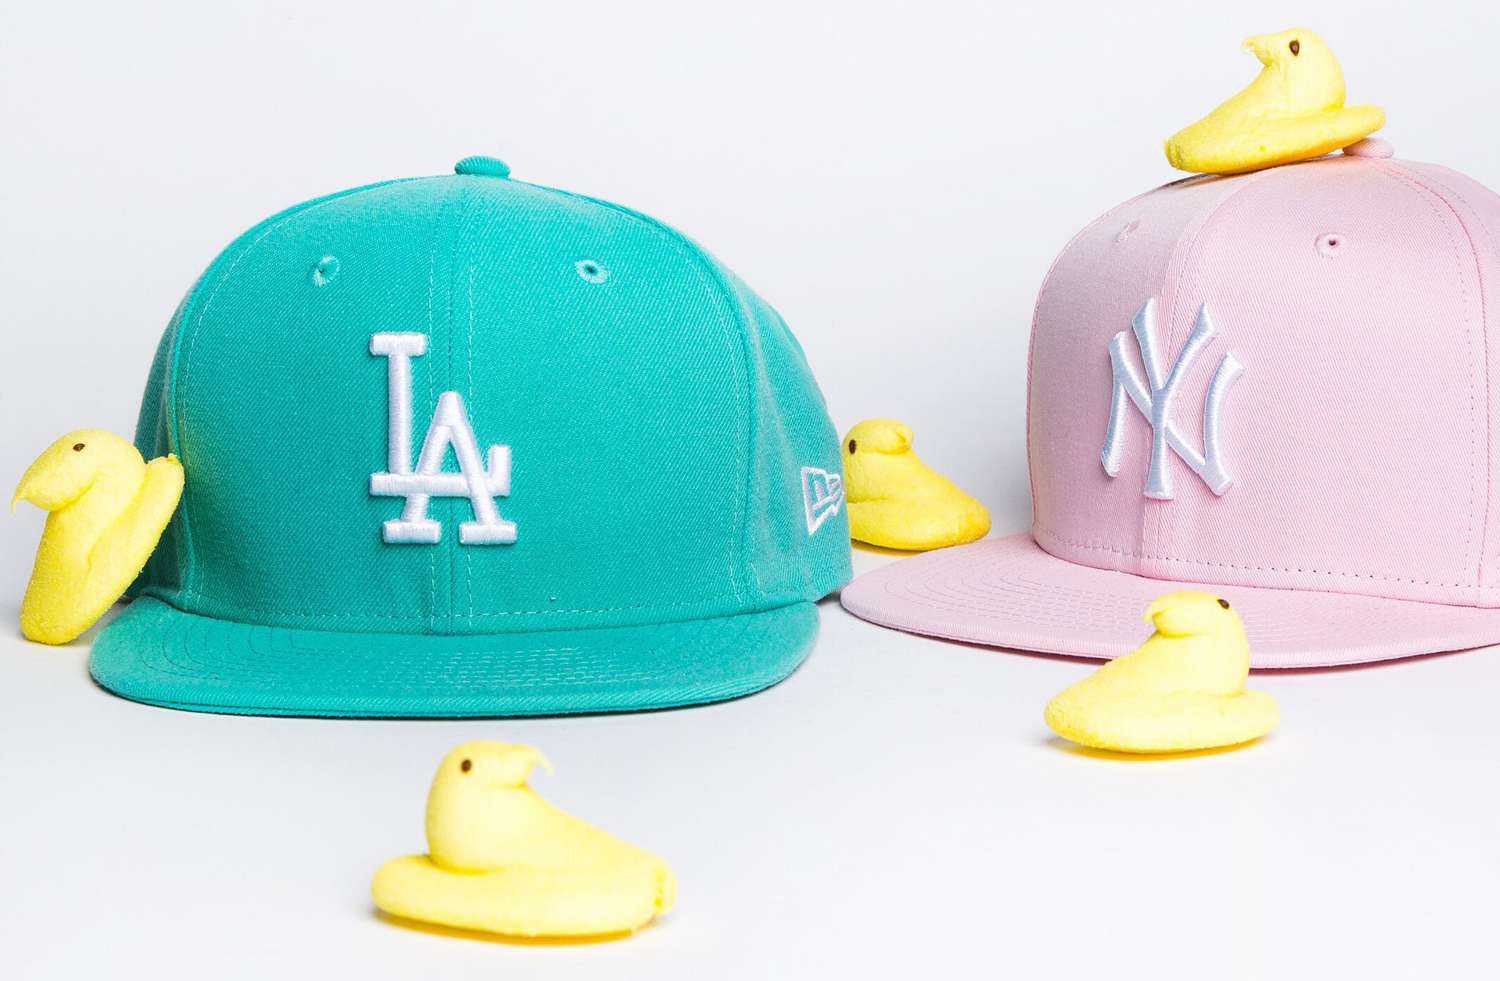 jordan-11-easter-mlb-hats